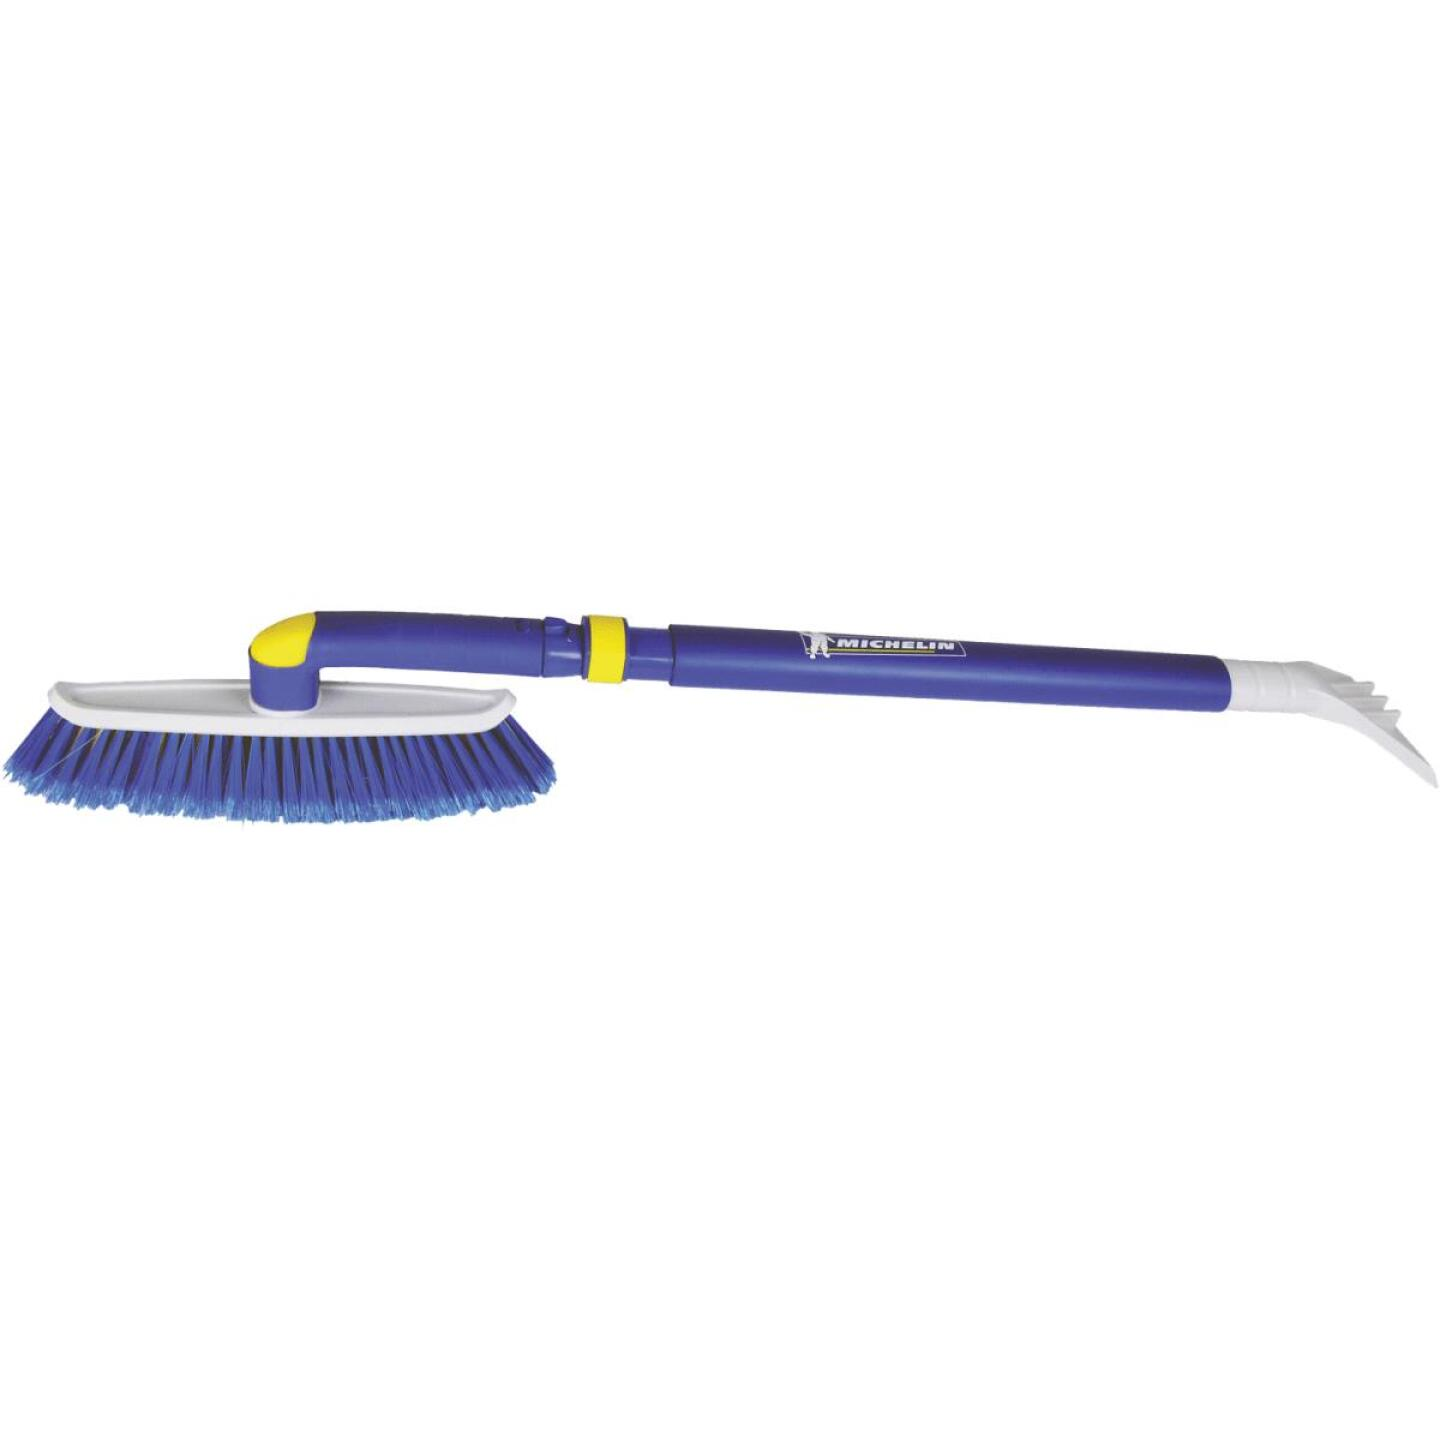 Michelin 48 In. Steel Extender Snowbrush with Ice Scraper Image 2